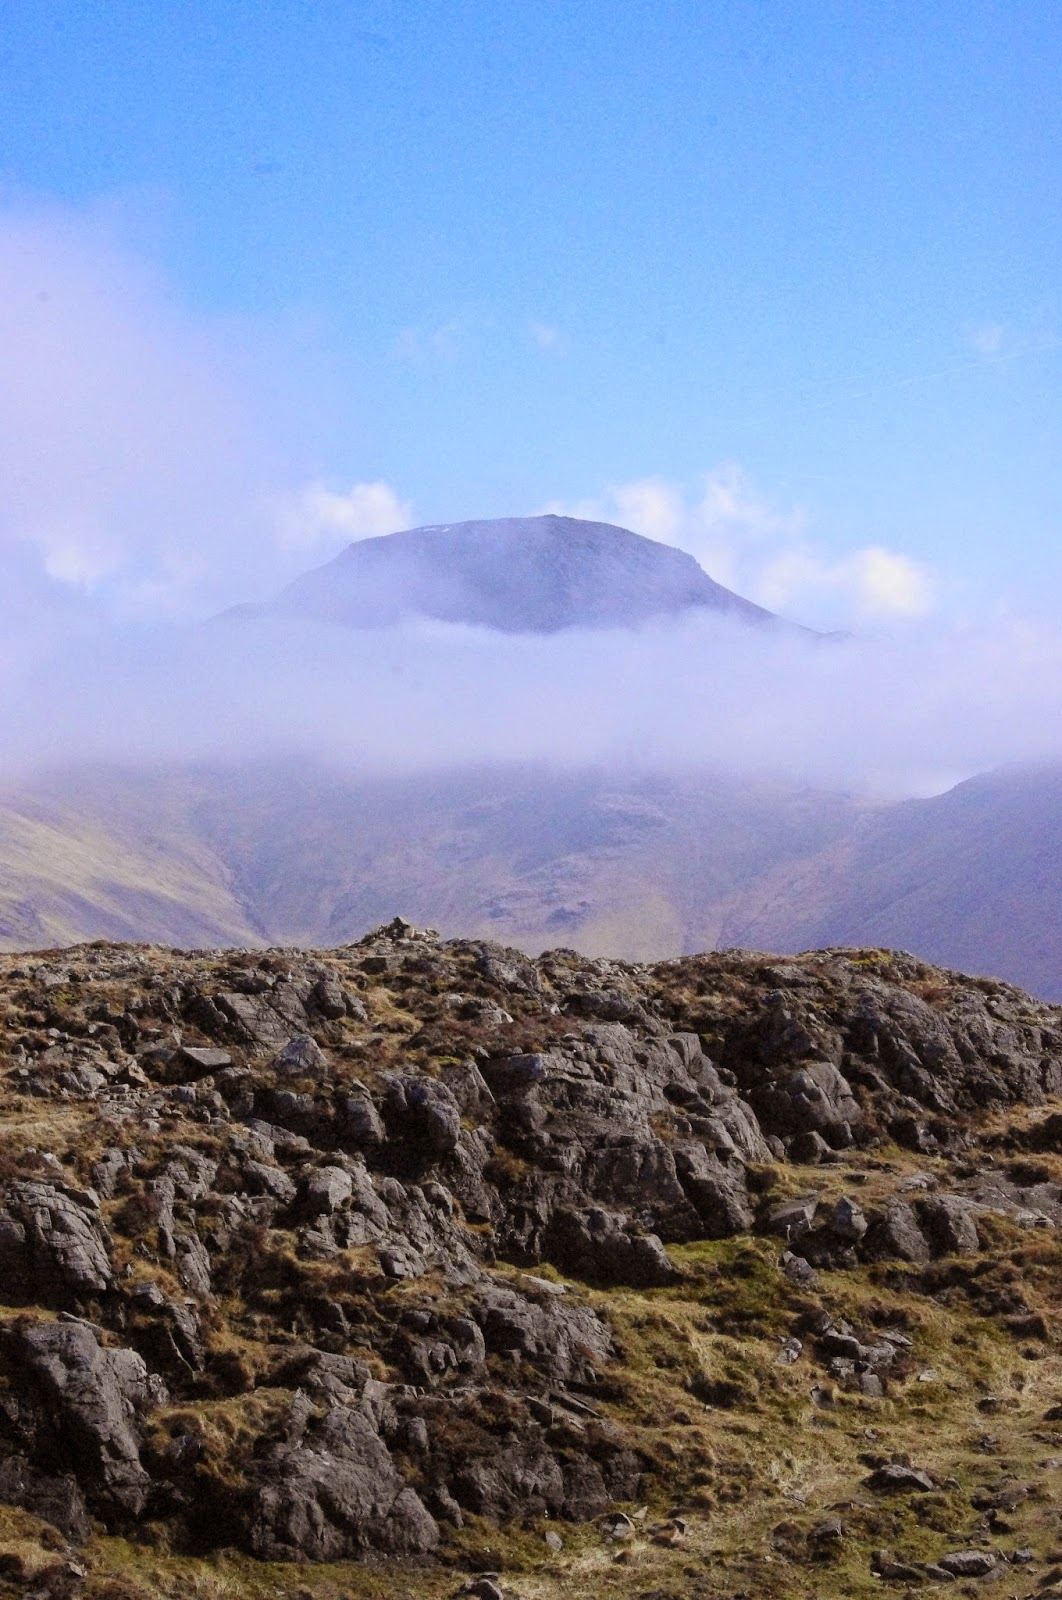 Lake District Cumbria Haystacks Mountain Climbing Walking